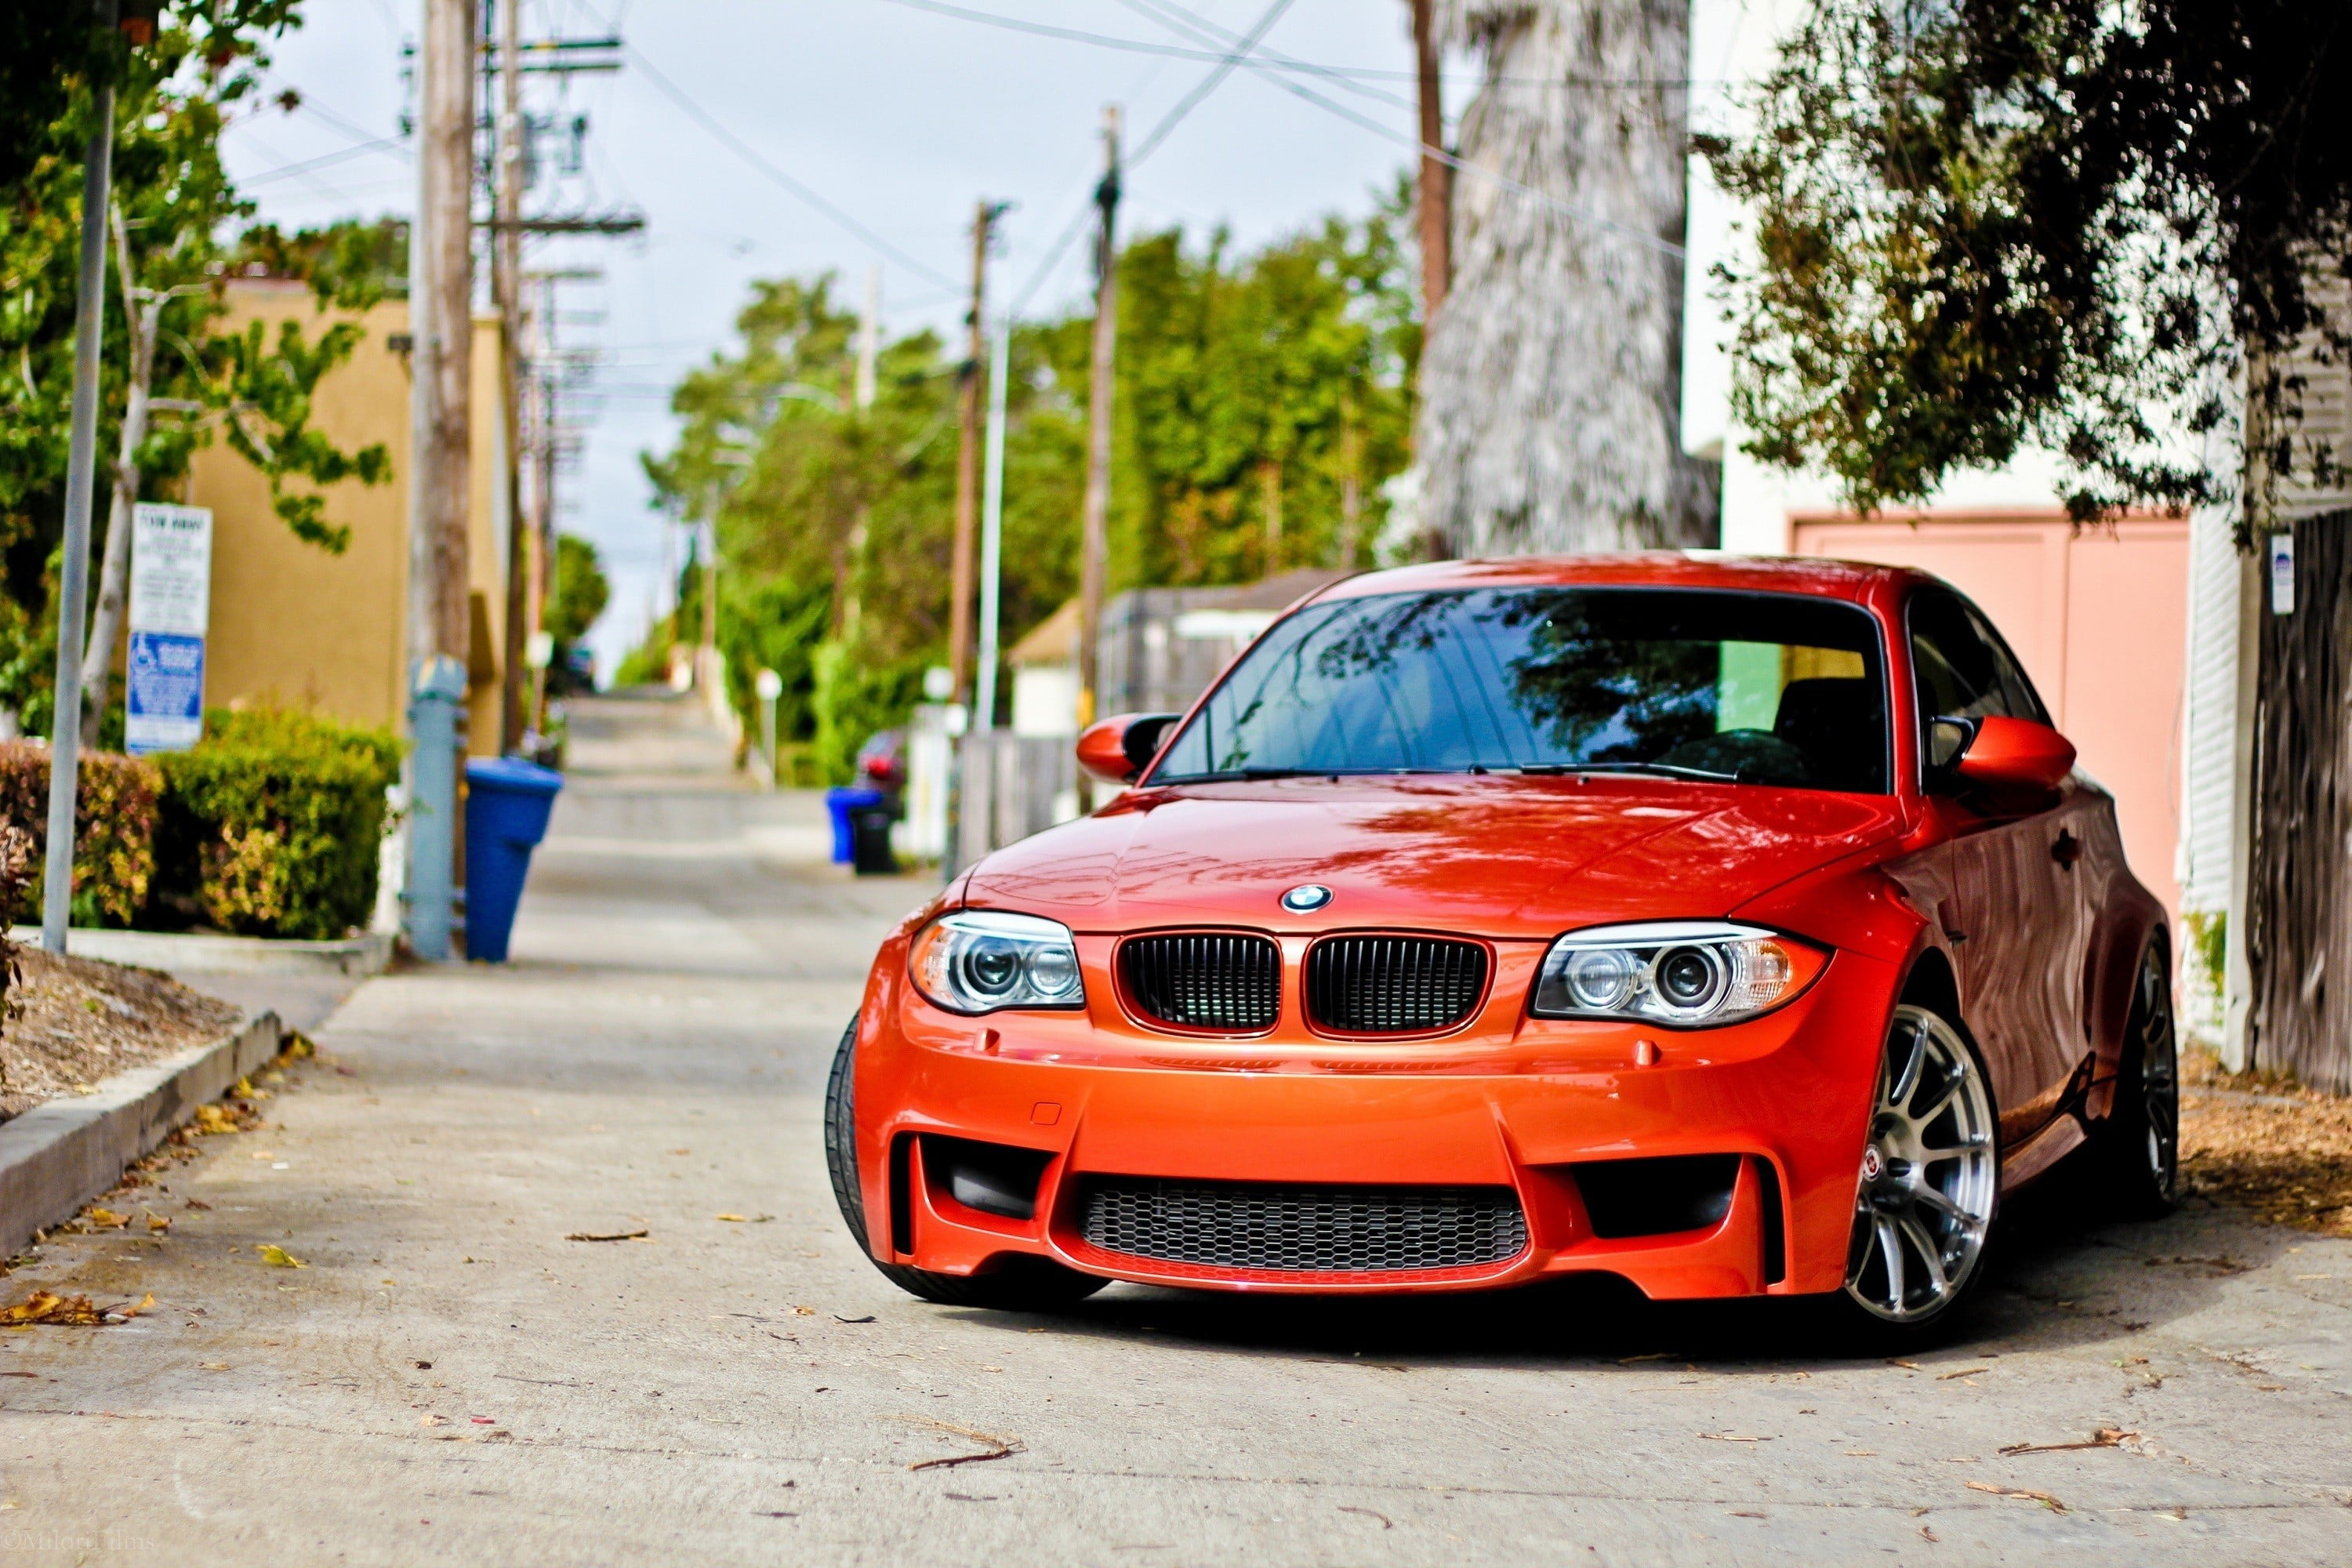 Red BMW car car BMW BMW 1M 1M HD wallpaper Wallpaper Flare 3000x2000